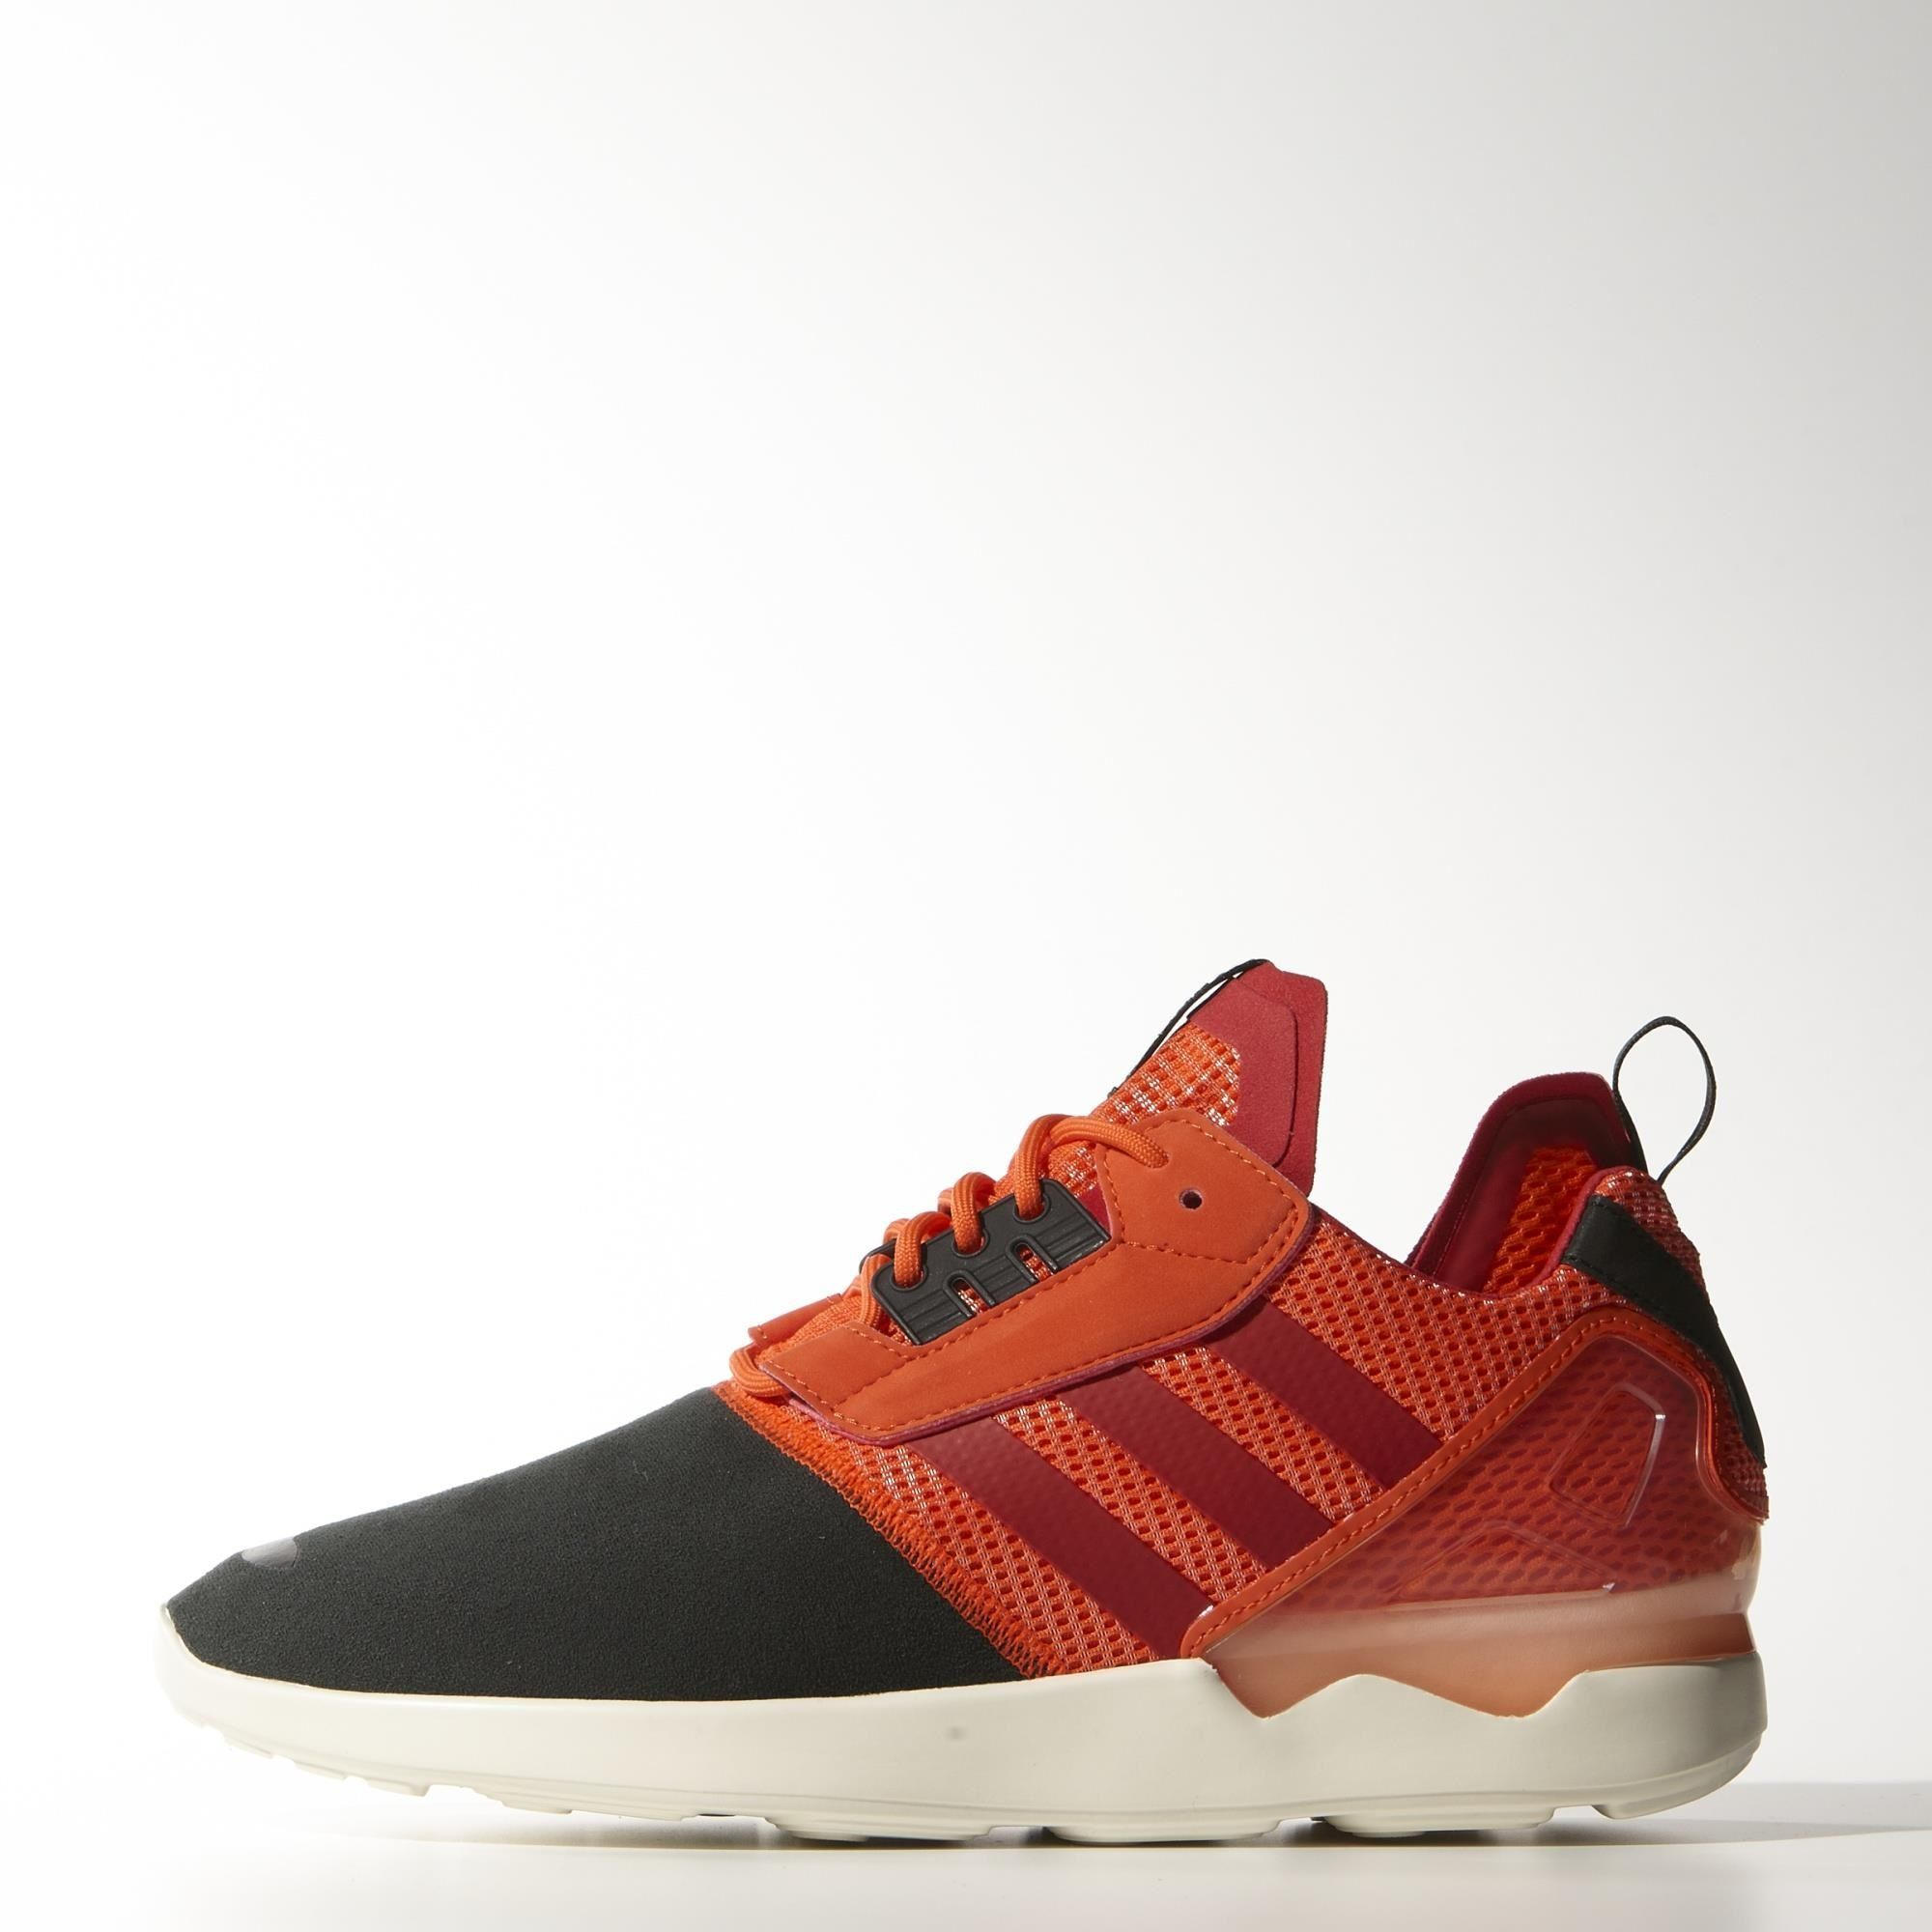 adidas ZX 8000 Boost Shoes - Multicolor  c82d28e28